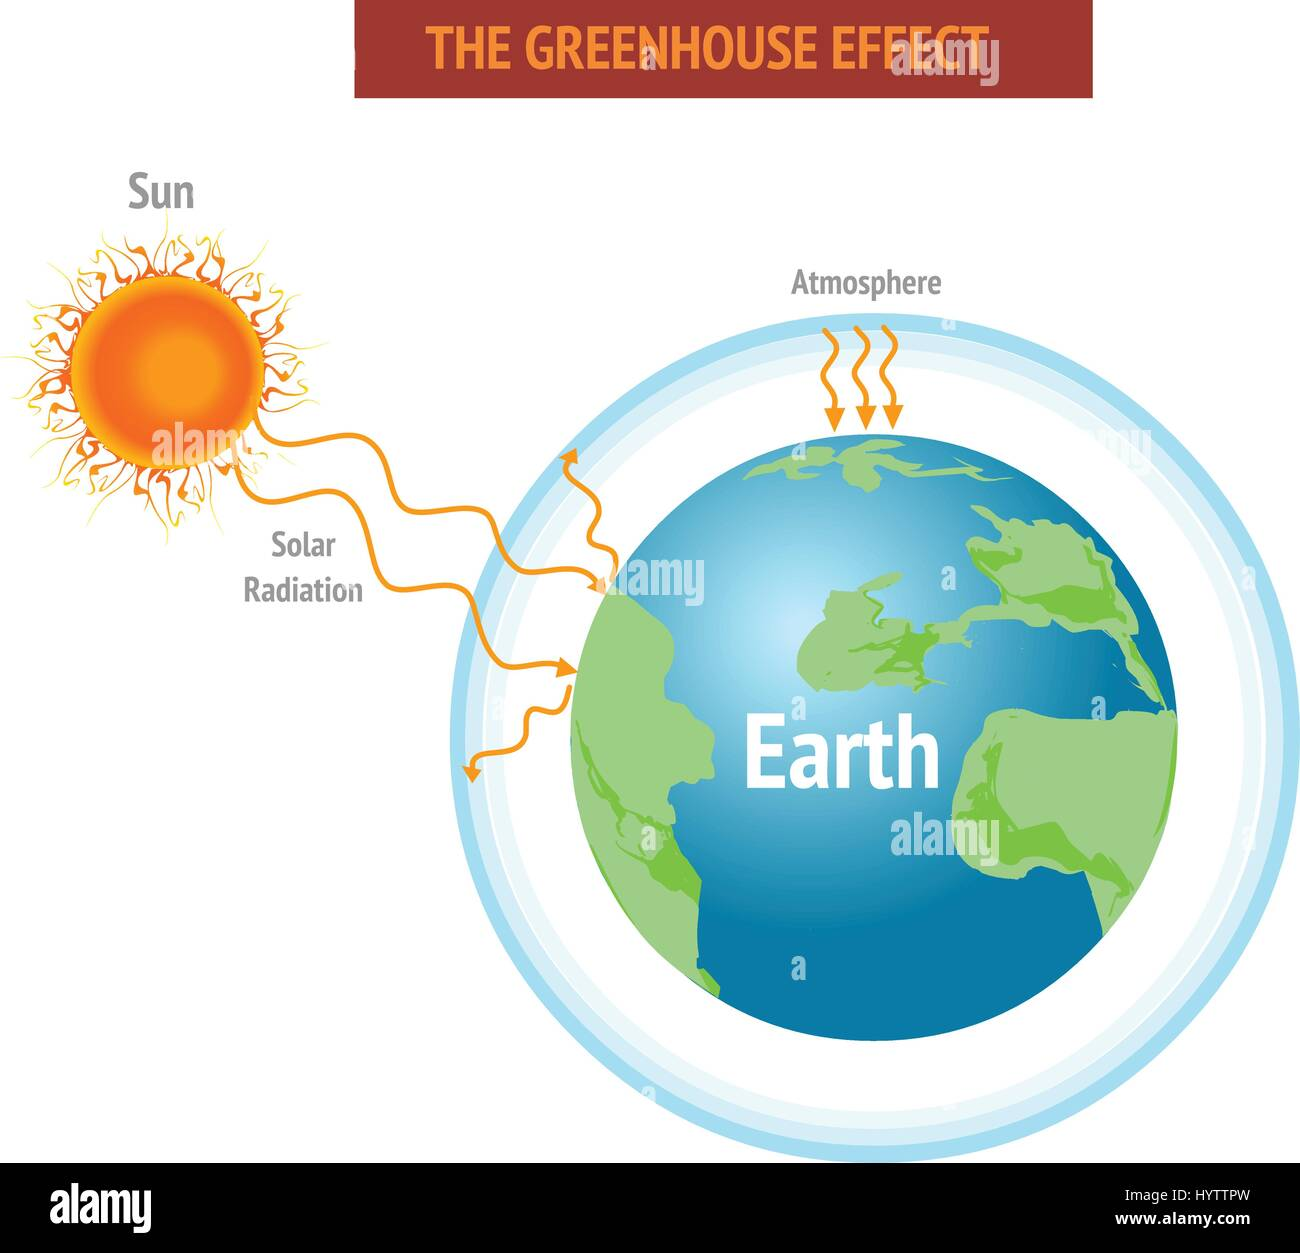 Greenhouse Effect And Global Warming Vector Illustration Stock Vector Art Amp Illustration Vector